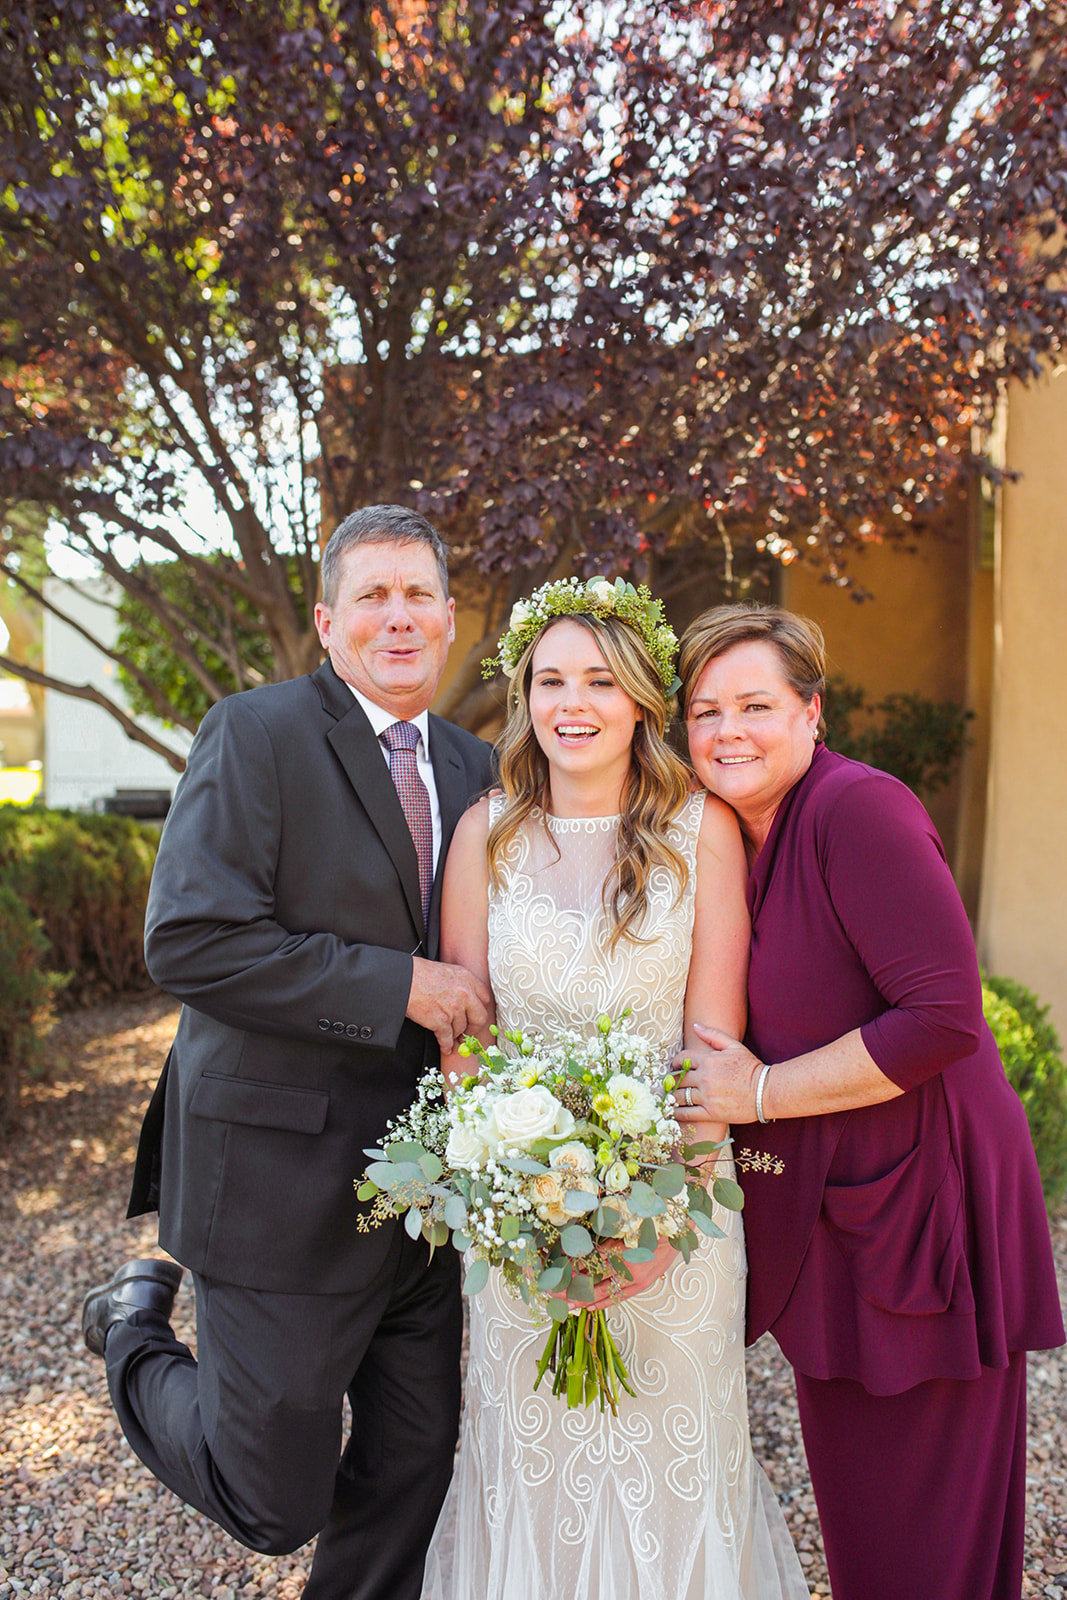 Albuquerque Wedding Photographer_Catholic Wedding_www.tylerbrooke.com_Kate Kauffman_041